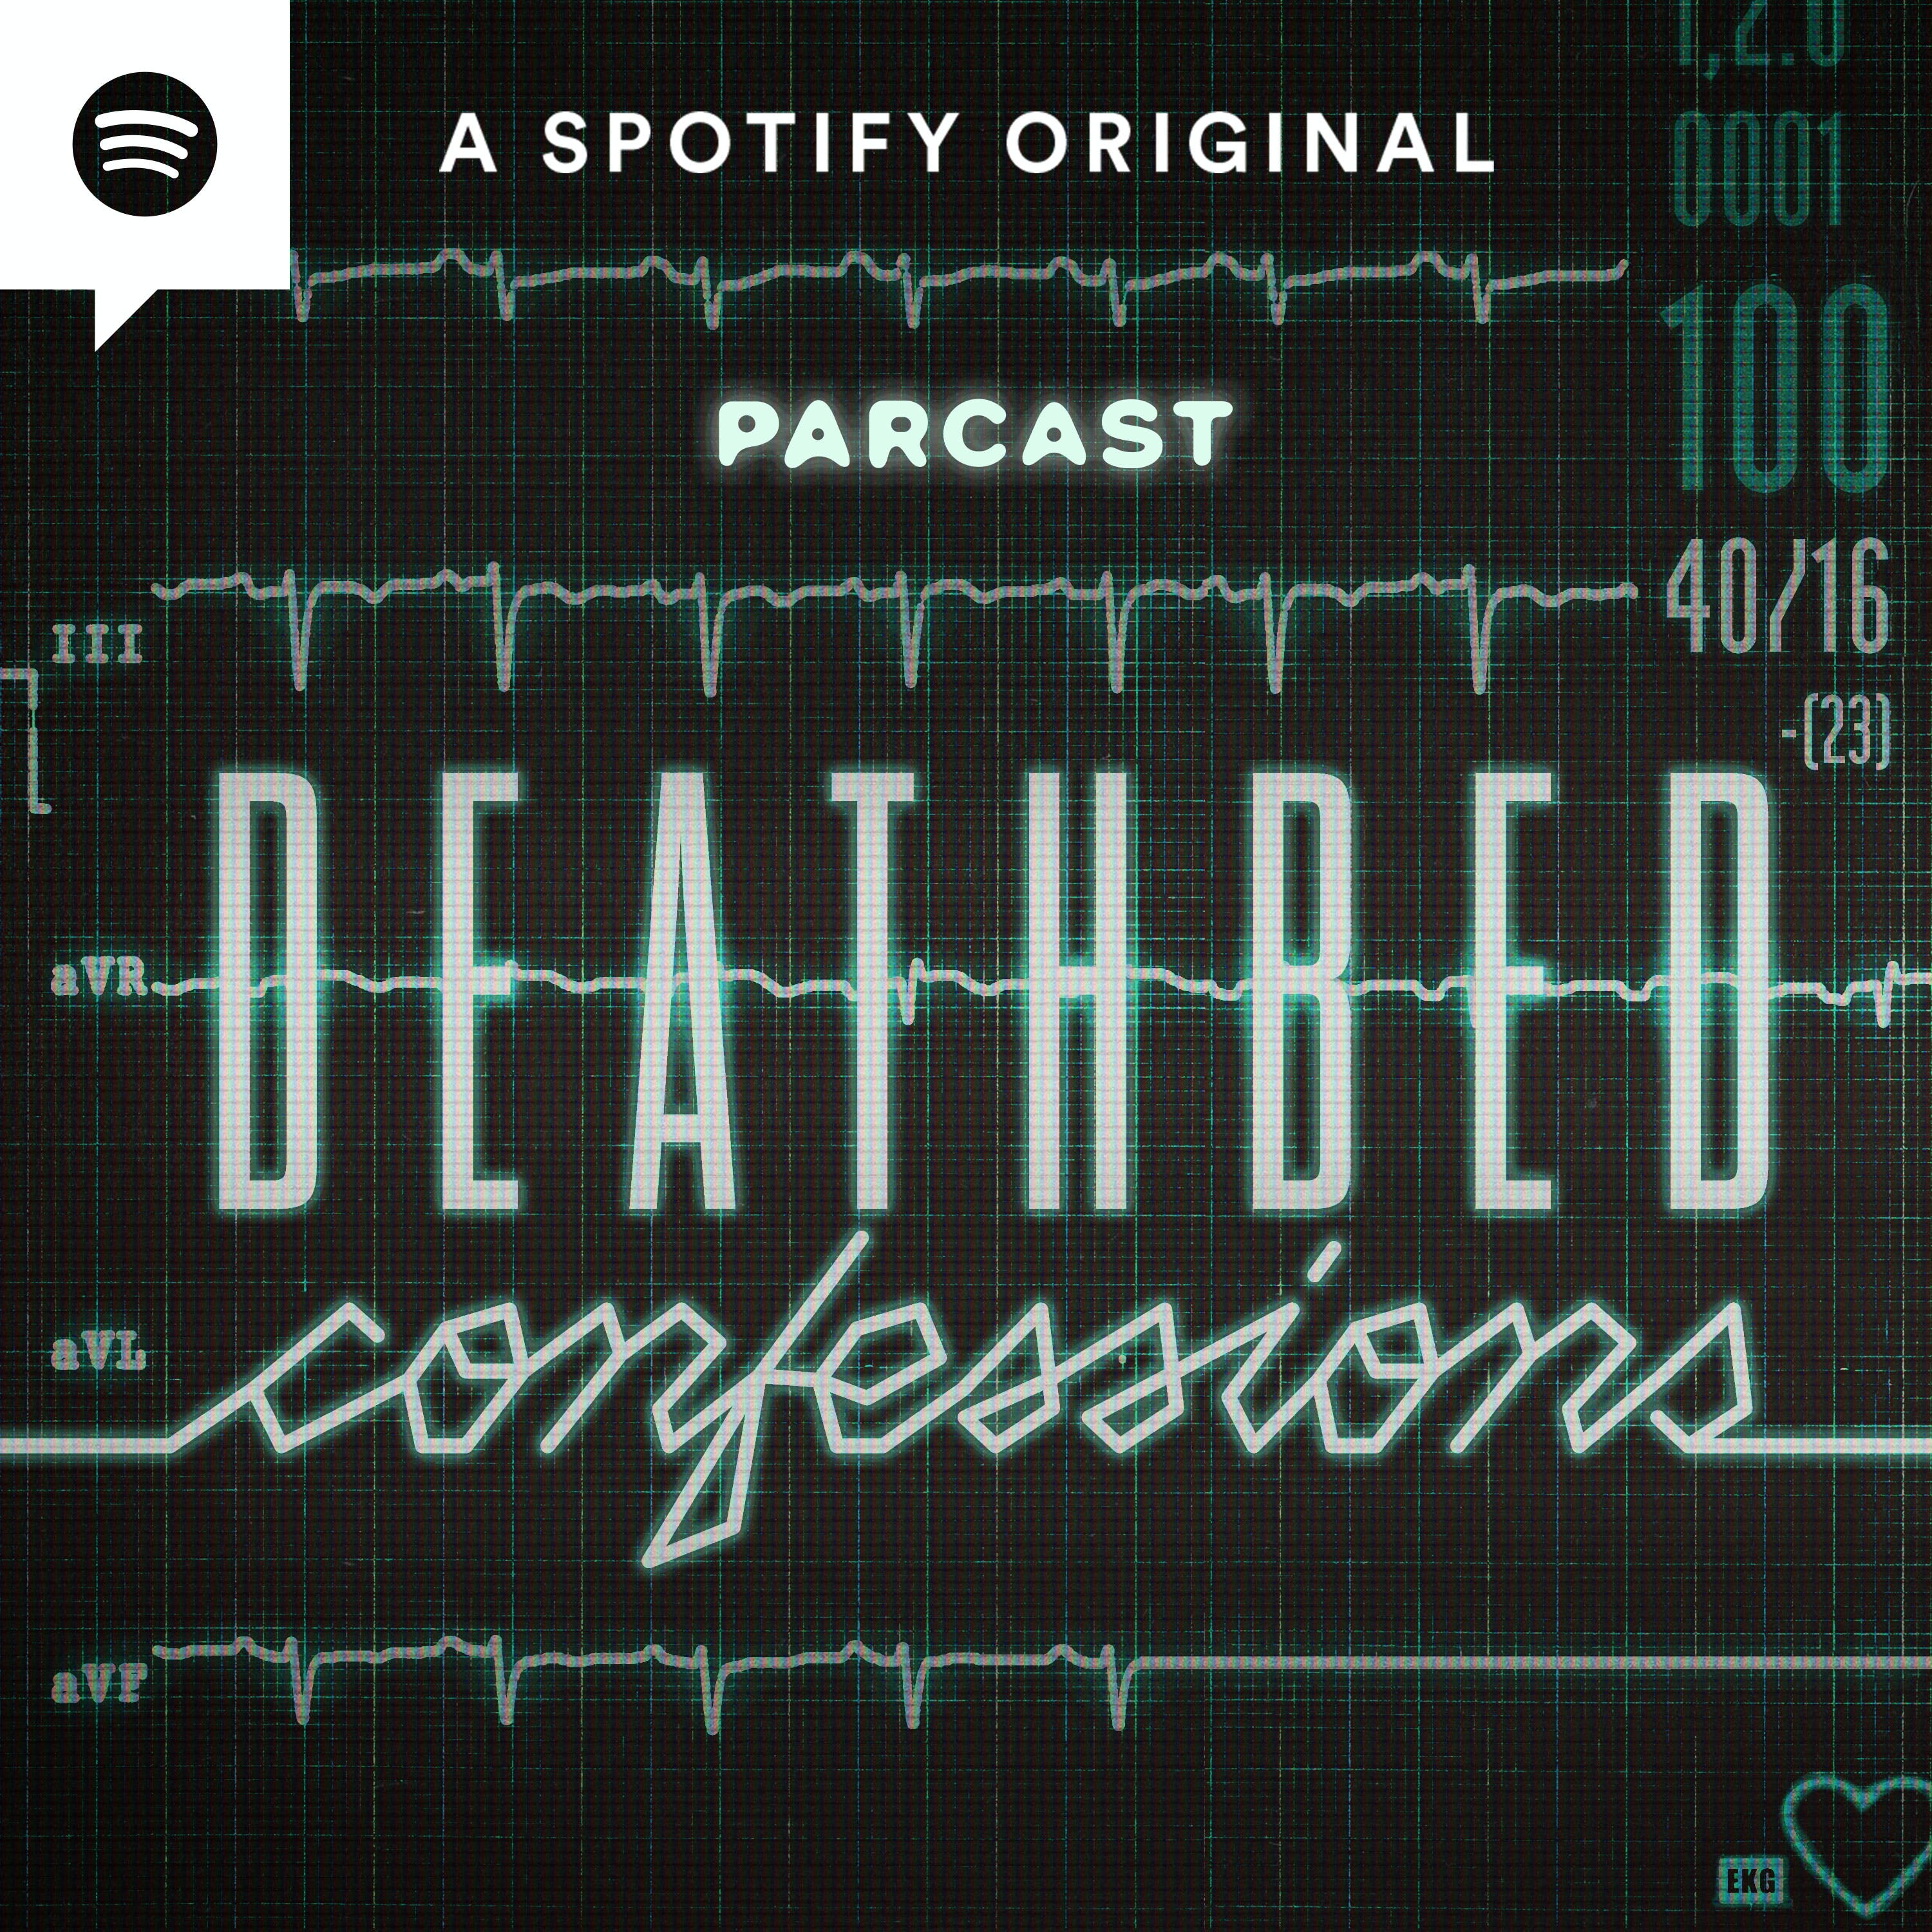 Introducing: Deathbed Confessions